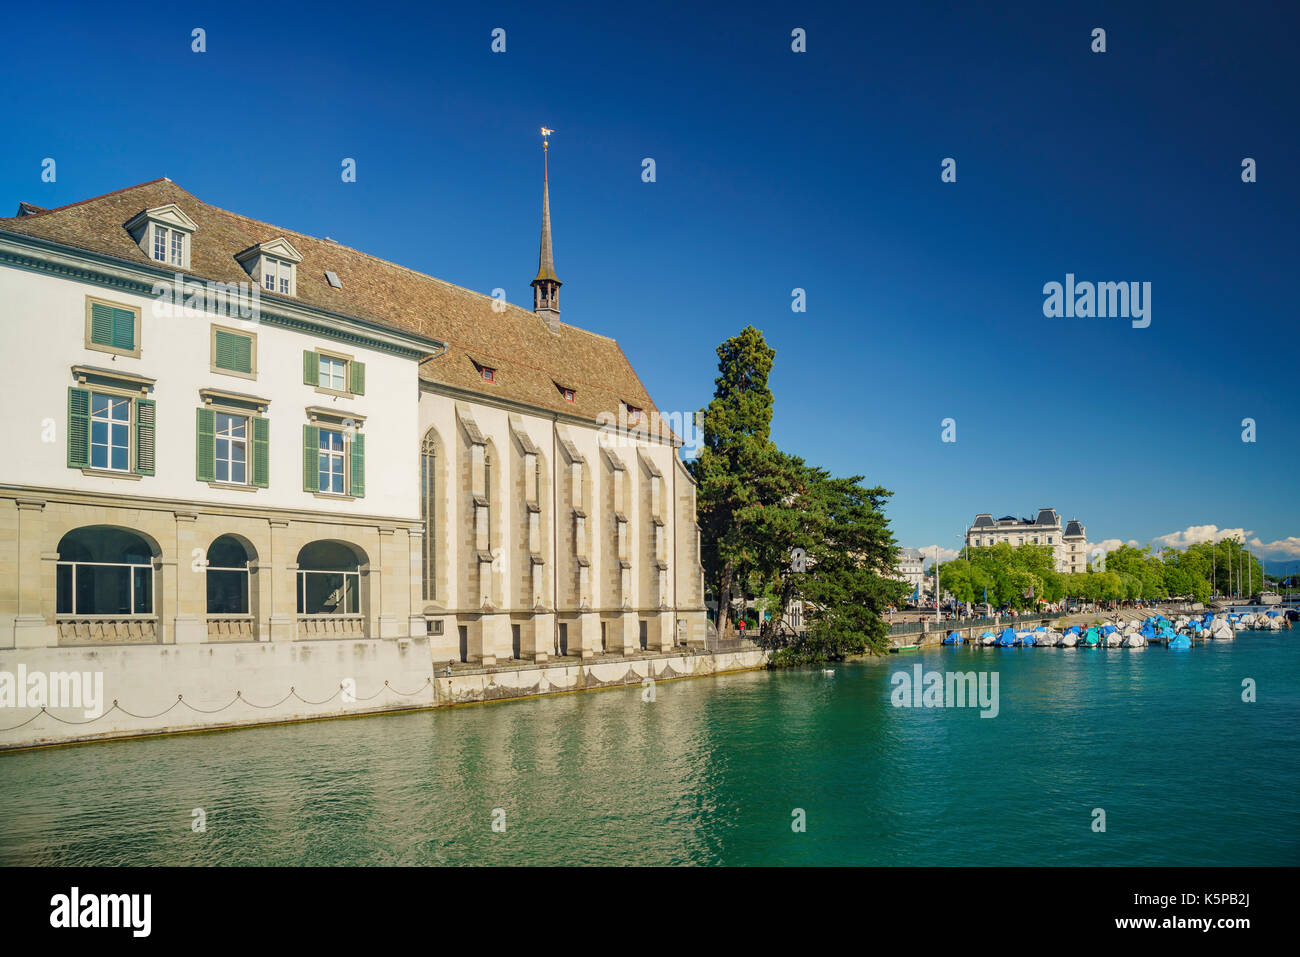 Afternoon cityscape with Limmat river of the historical Zurich city, Switzerland - Stock Image